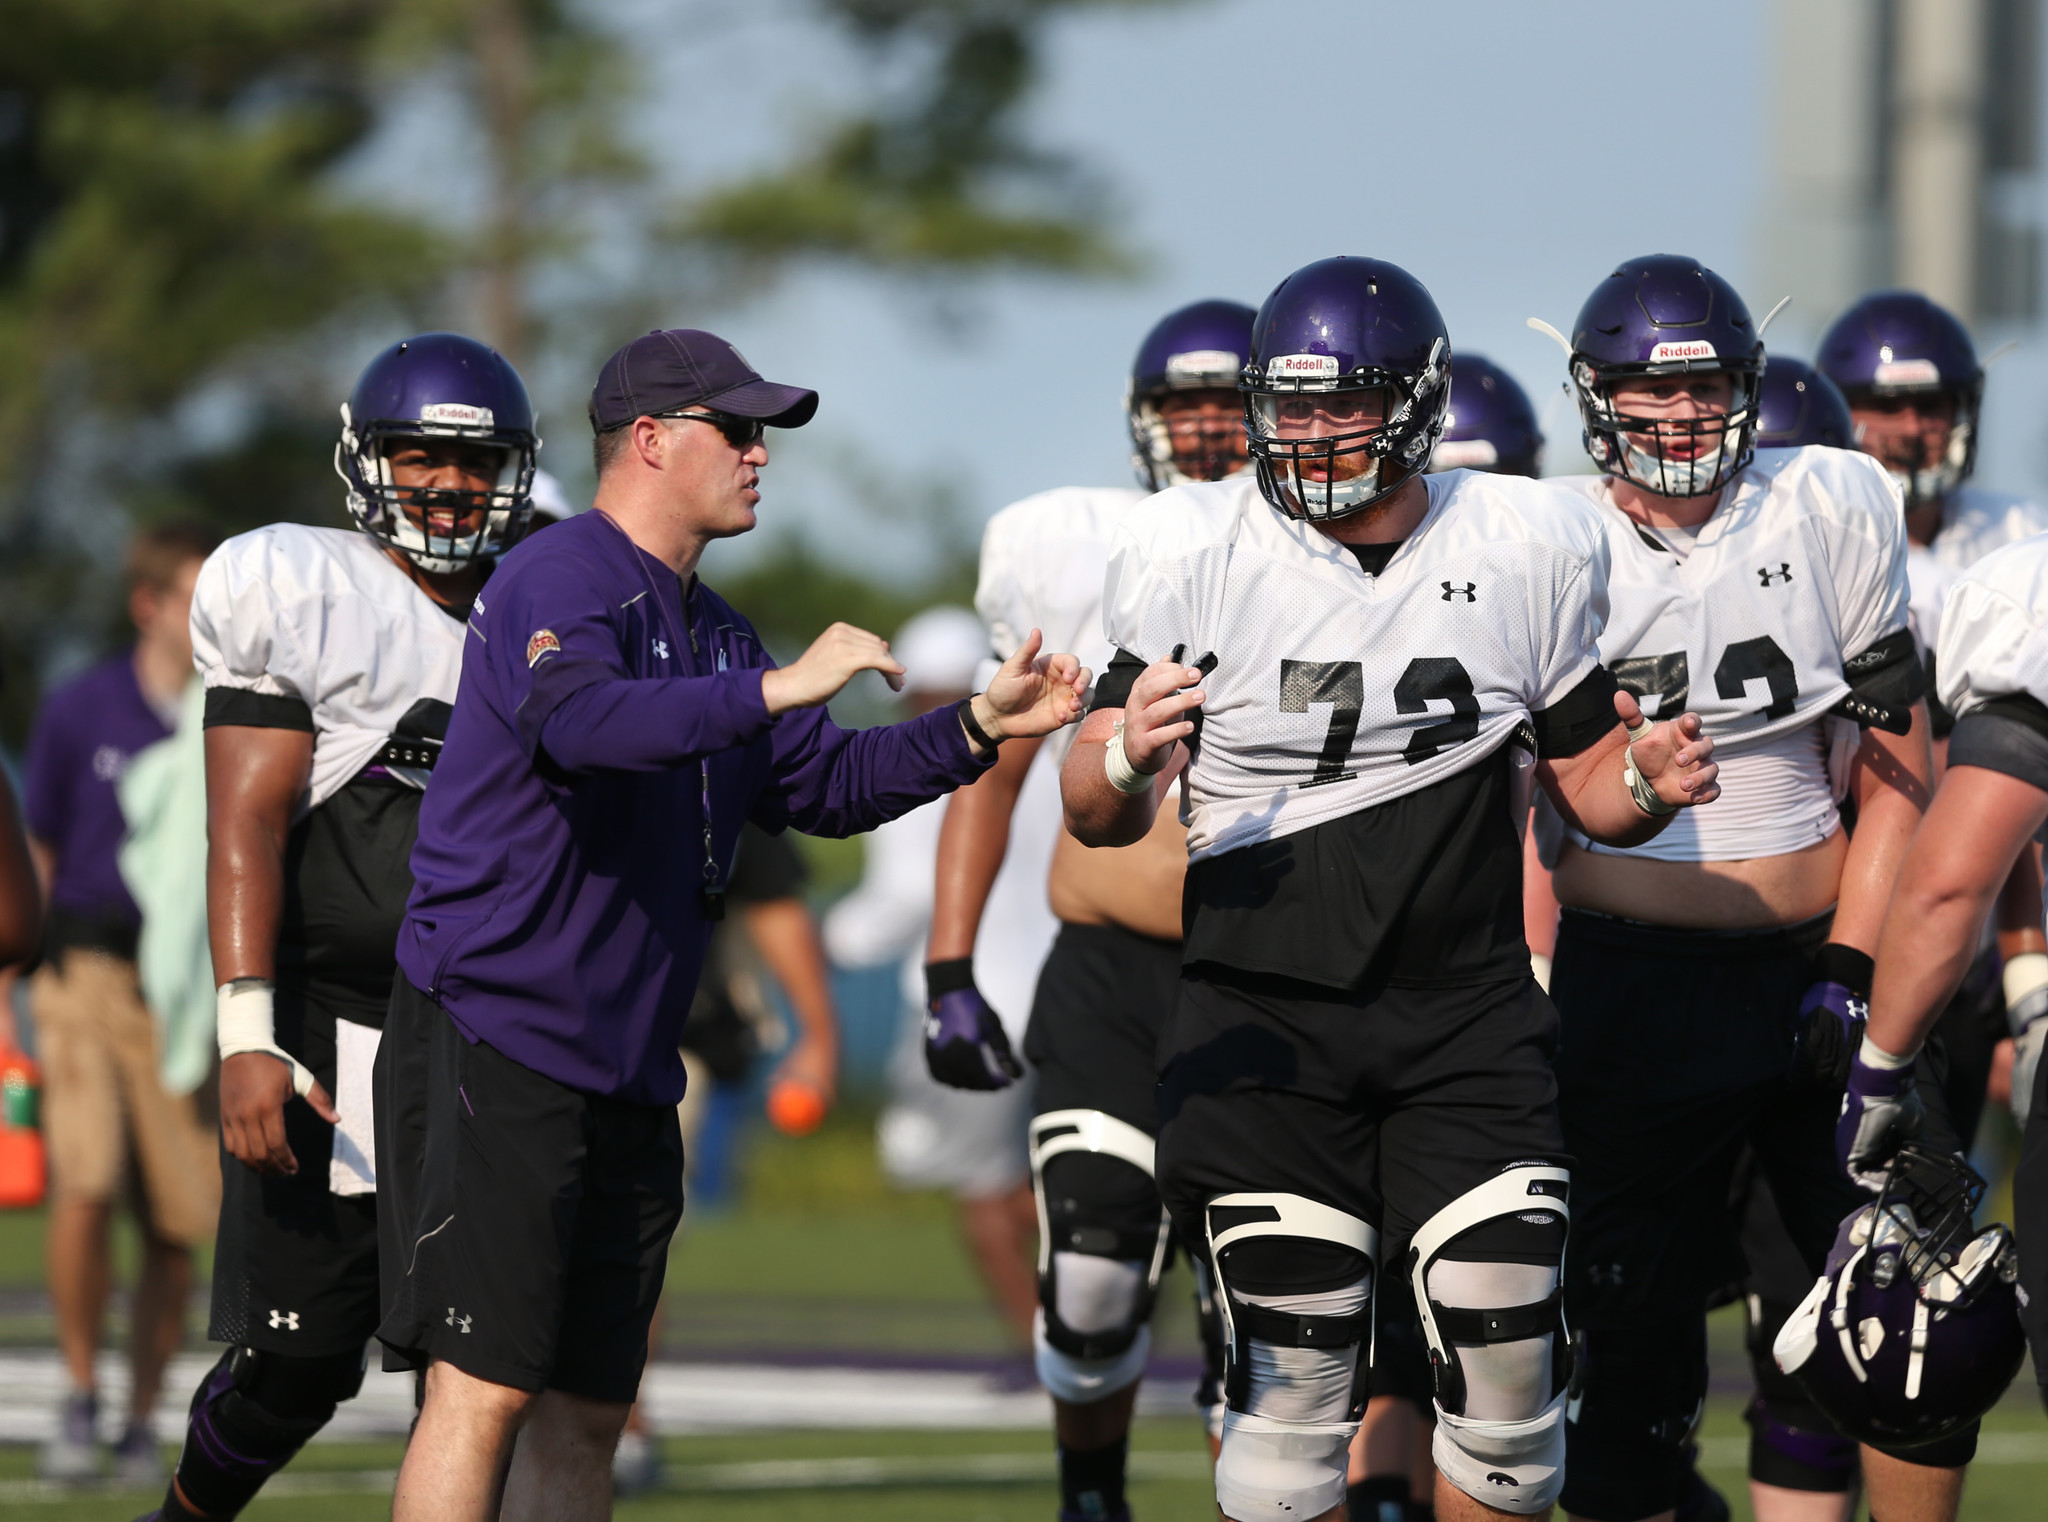 Ct-northwestern-national-signing-day-preview-spt-0131-20170130